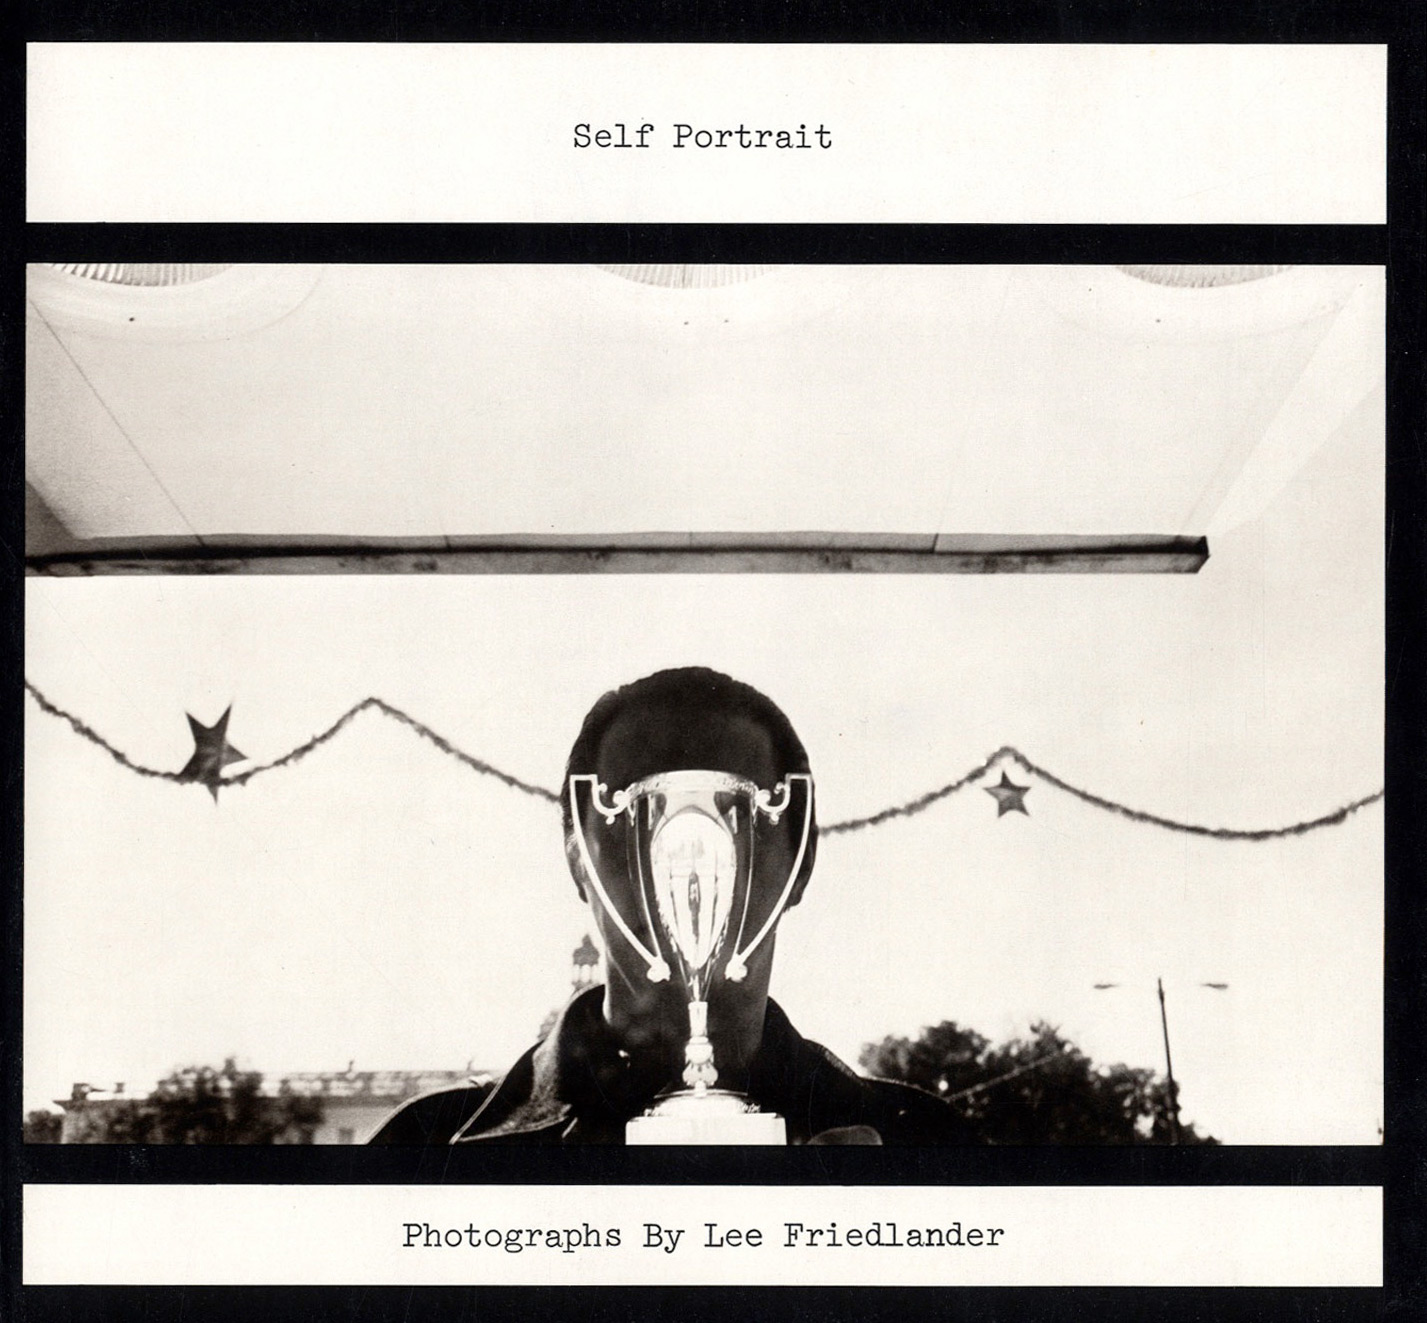 Self Portrait: Photographs by Lee Friedlander (First Edition) [SIGNED]